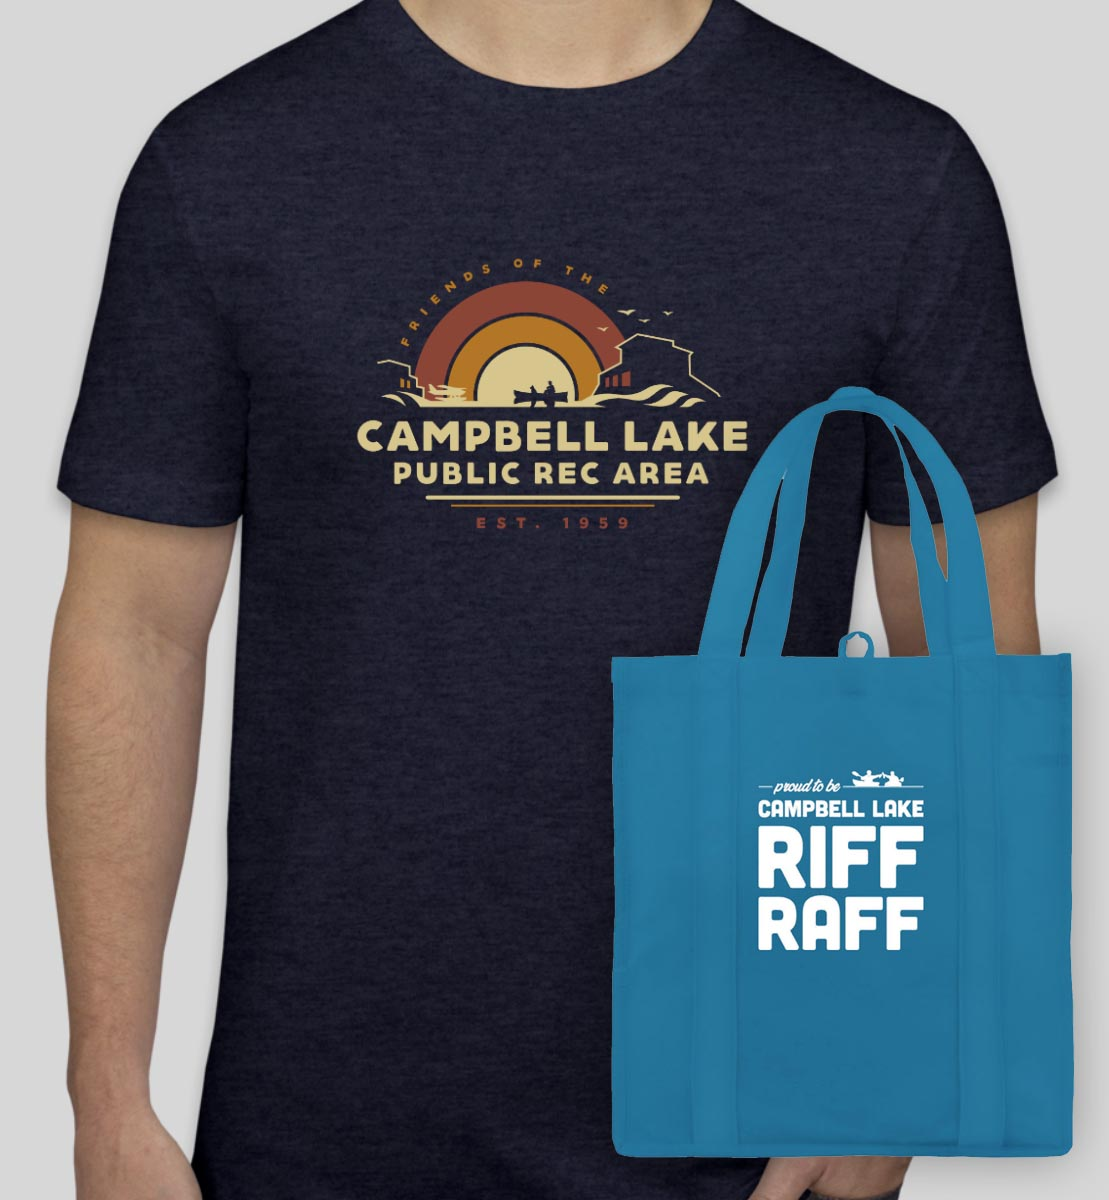 Campbell Lake merchandise